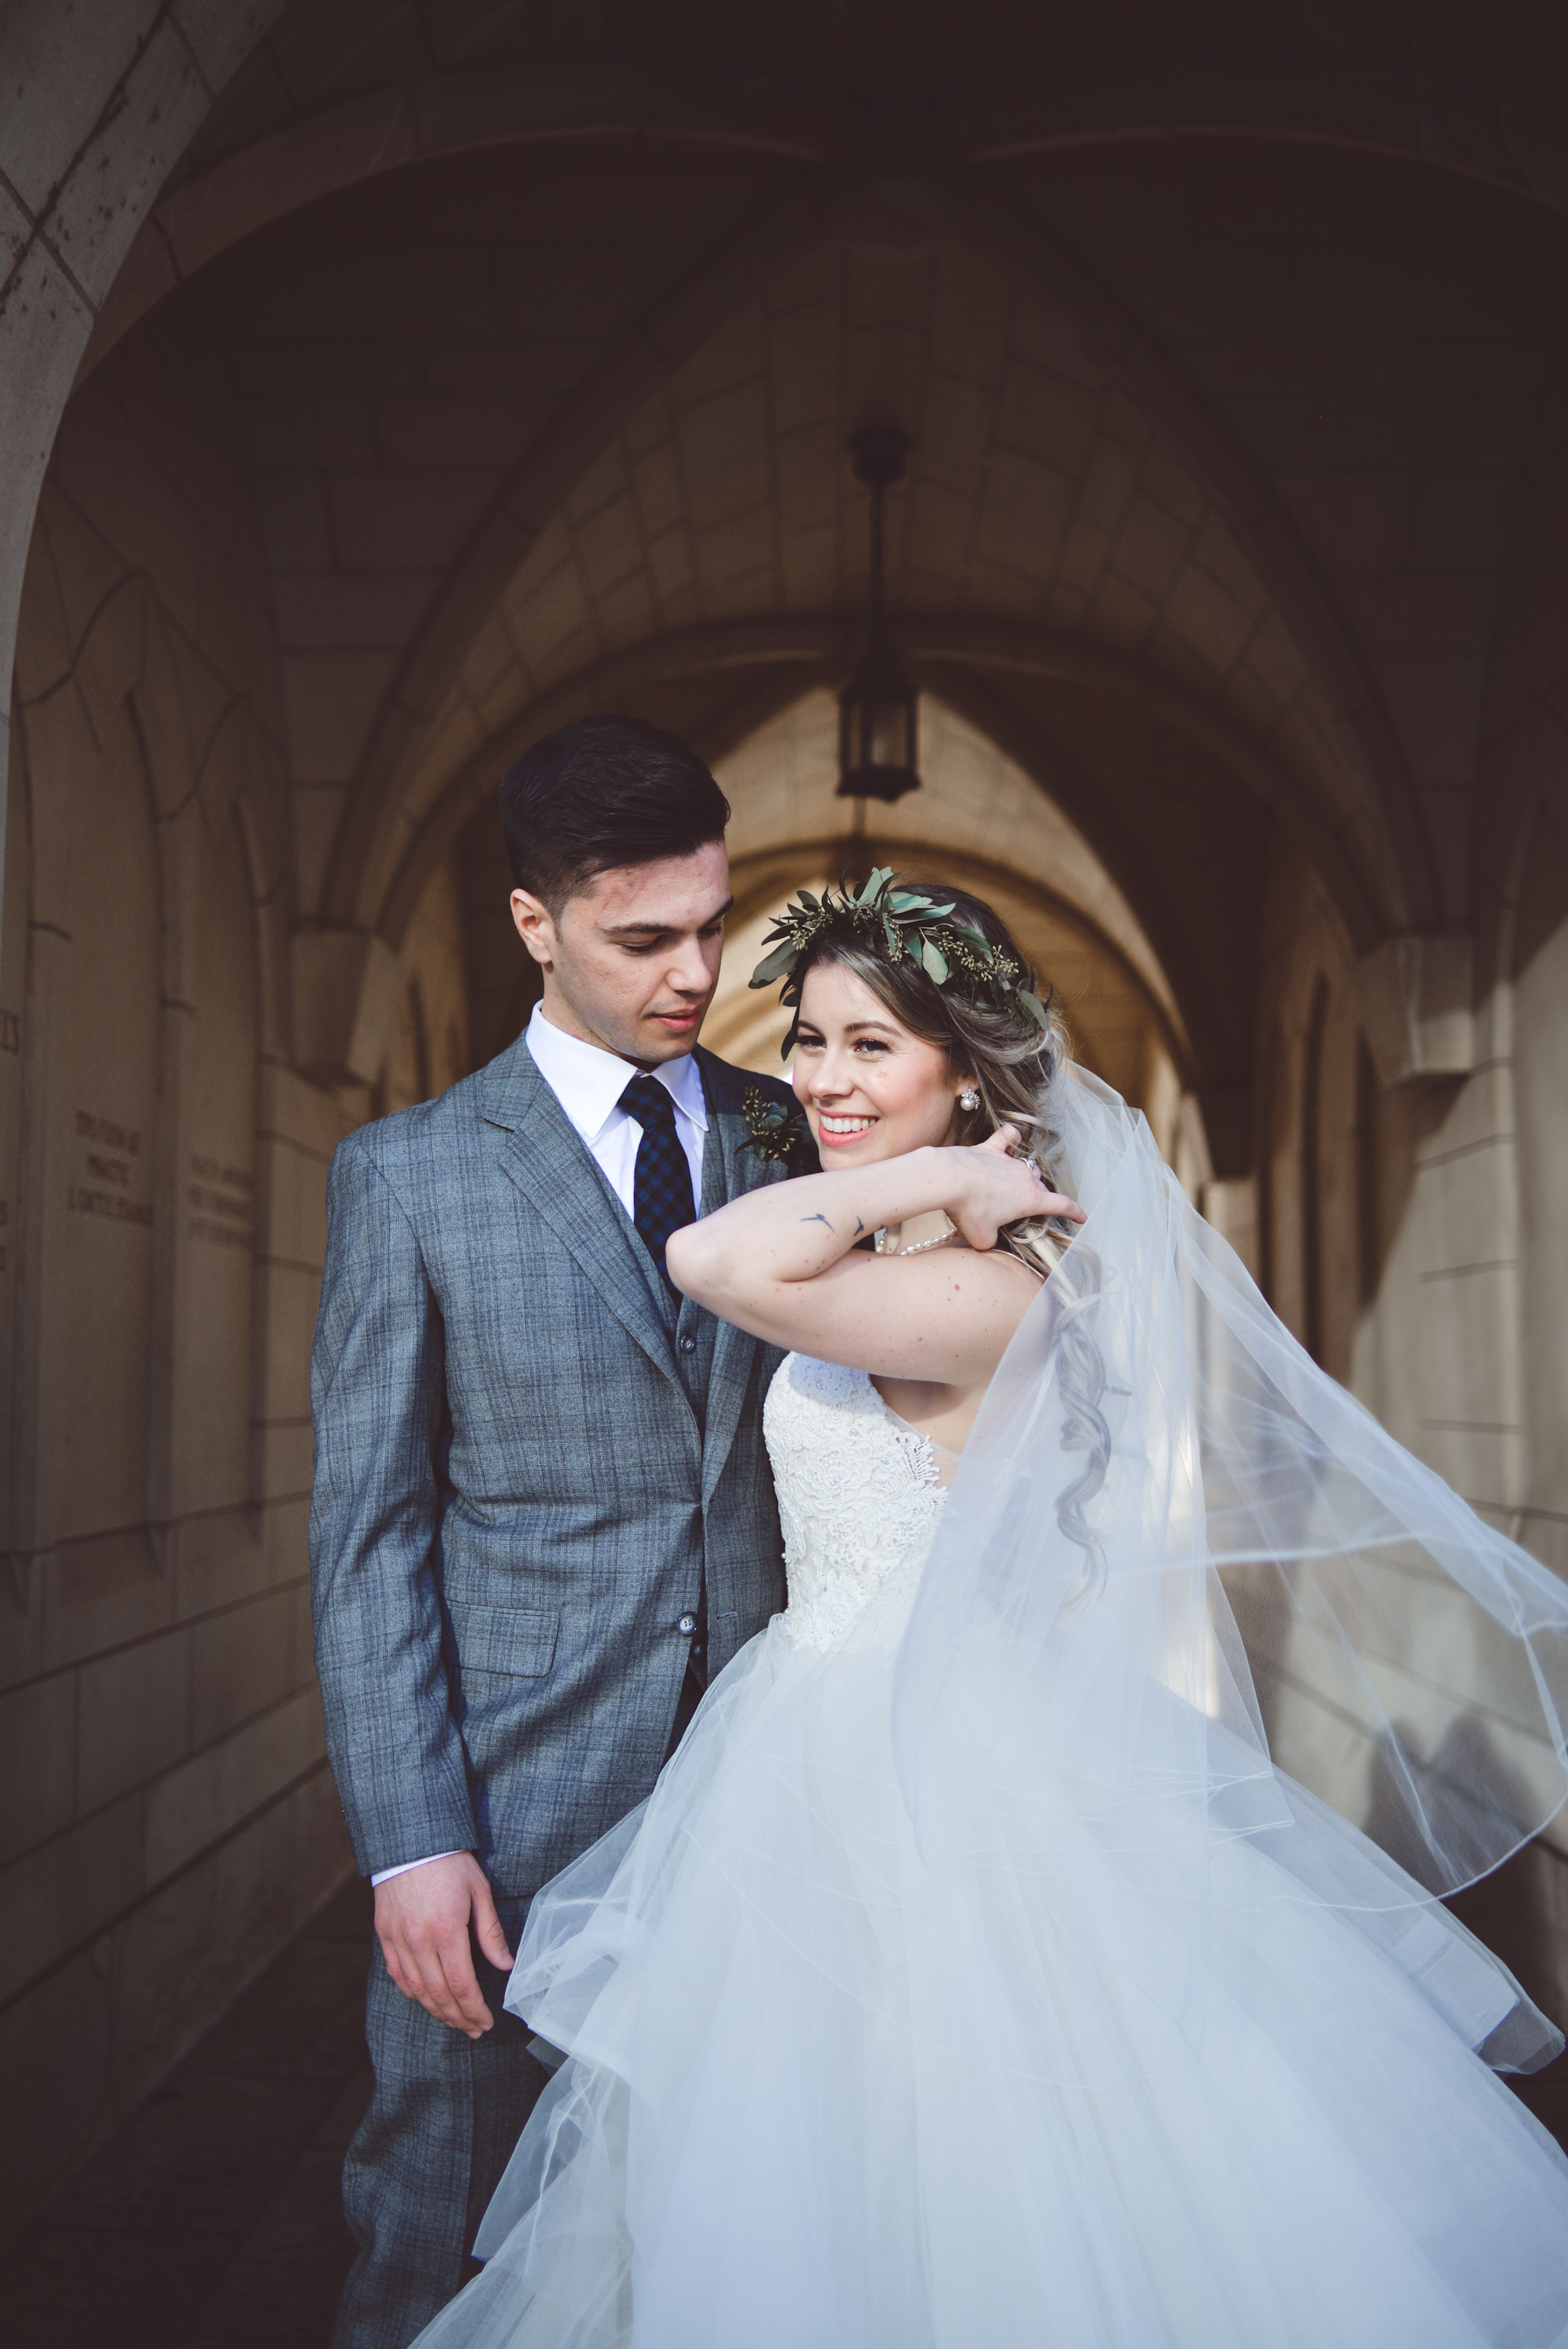 N + R - Bride + Groom-3104.jpg